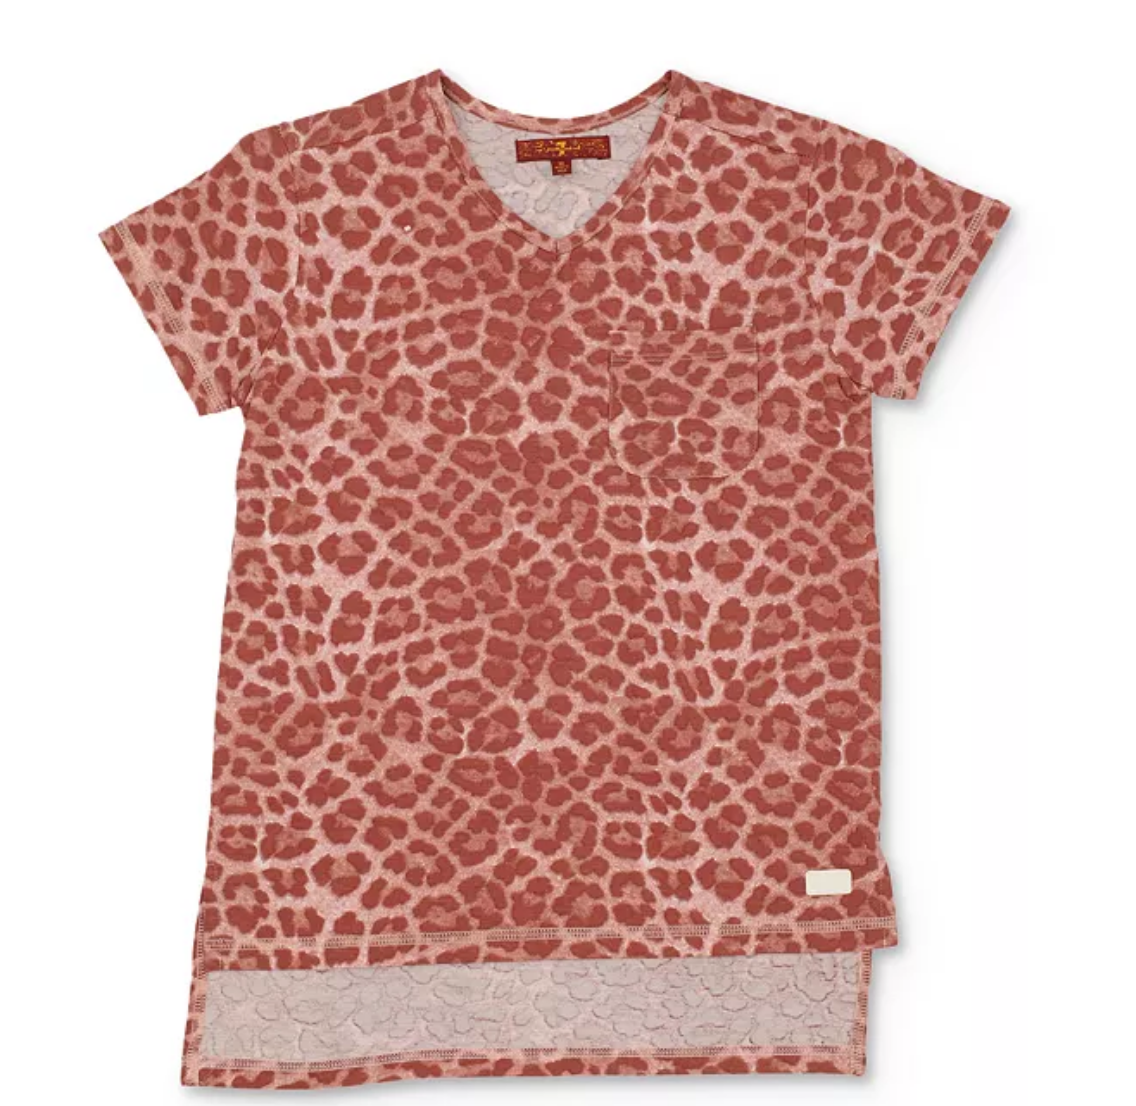 7 For All Mankind Pink Leopard Pocket Tee